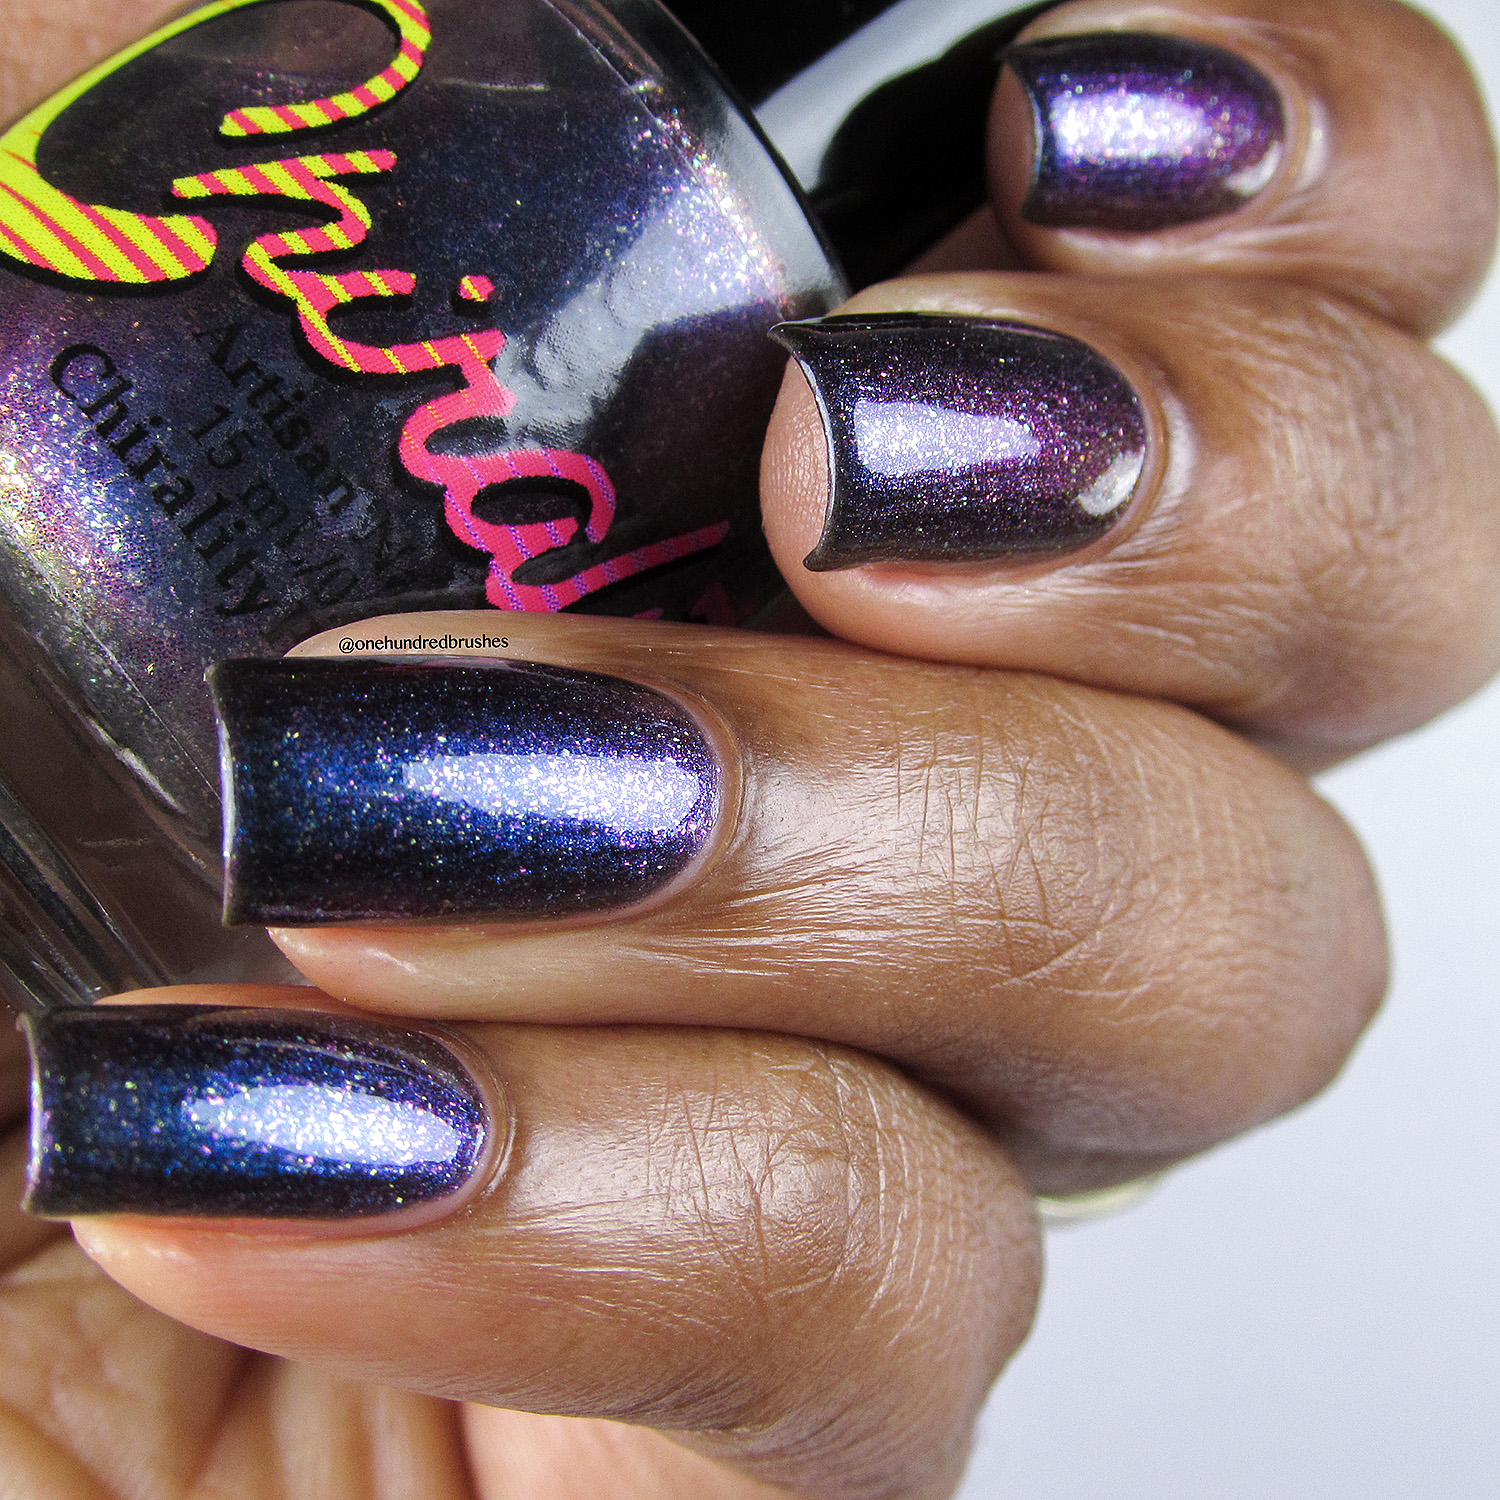 Galactic Core - bottle - Chirality - April Polish Pickup - One Hundred Brushes -